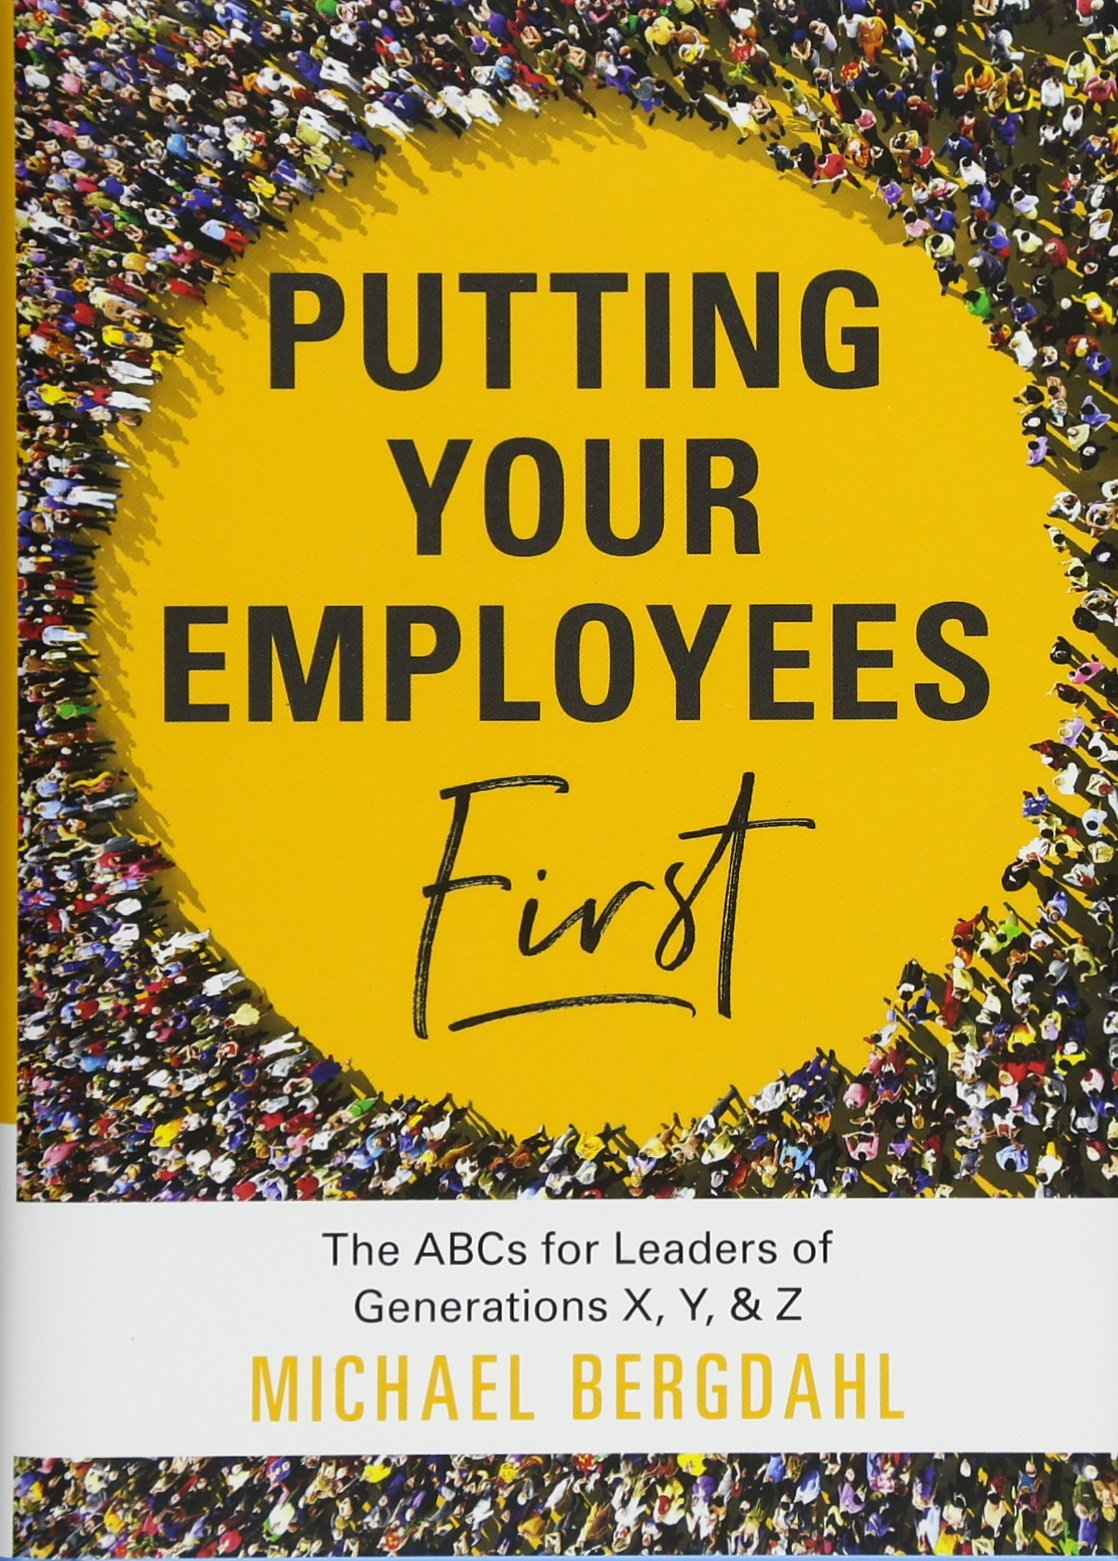 Putting Your Employees First: The ABC's for Leaders of Generations X, Y, & Z by Simple Truths (Image #1)